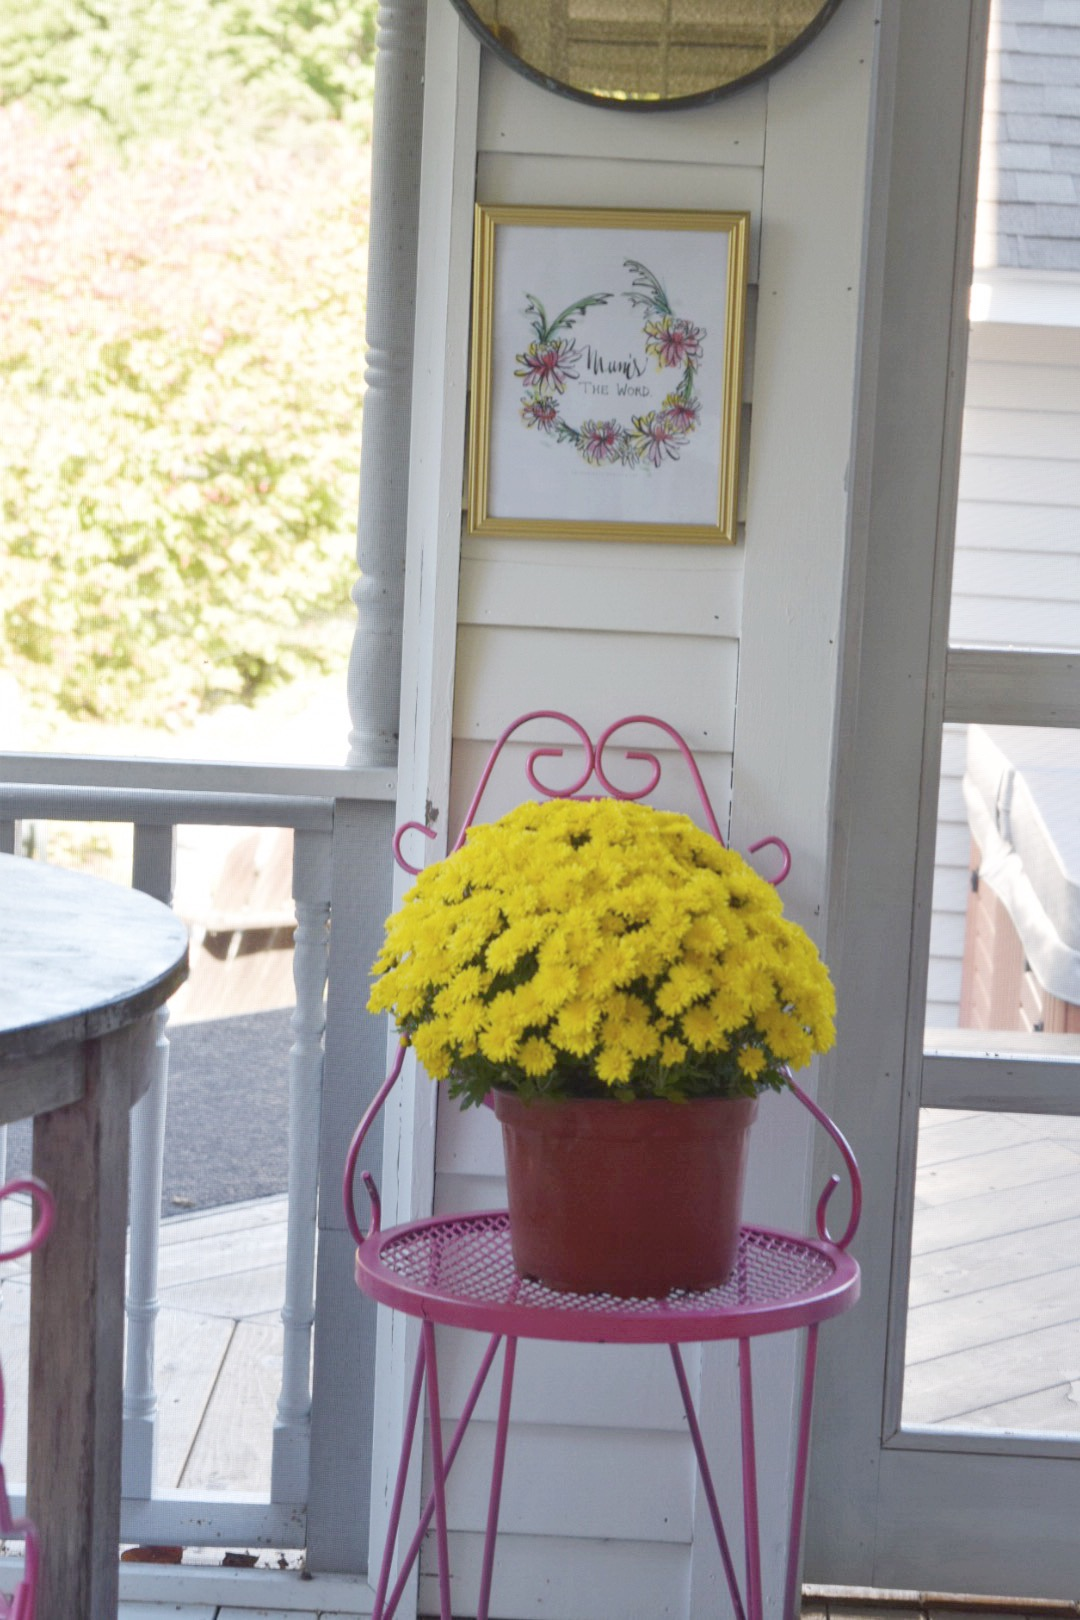 porch-mum-on-pink-chair